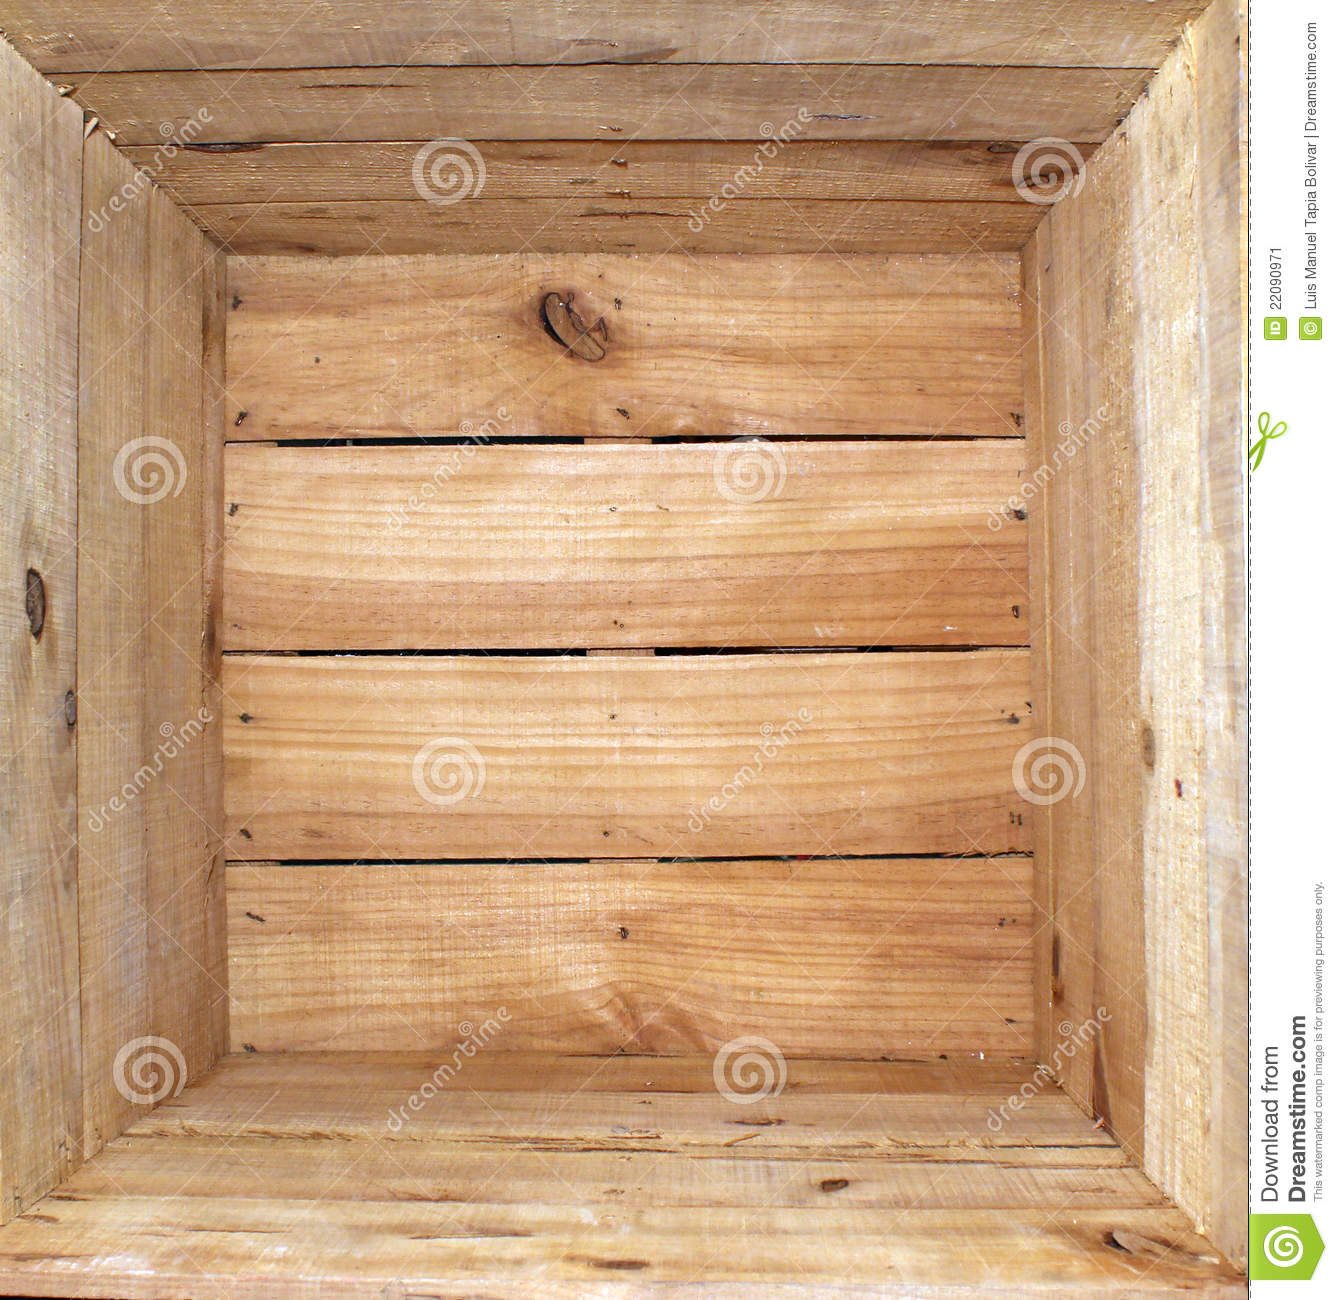 Inside a wooden box empty. This is ideal for use as wallpaper.